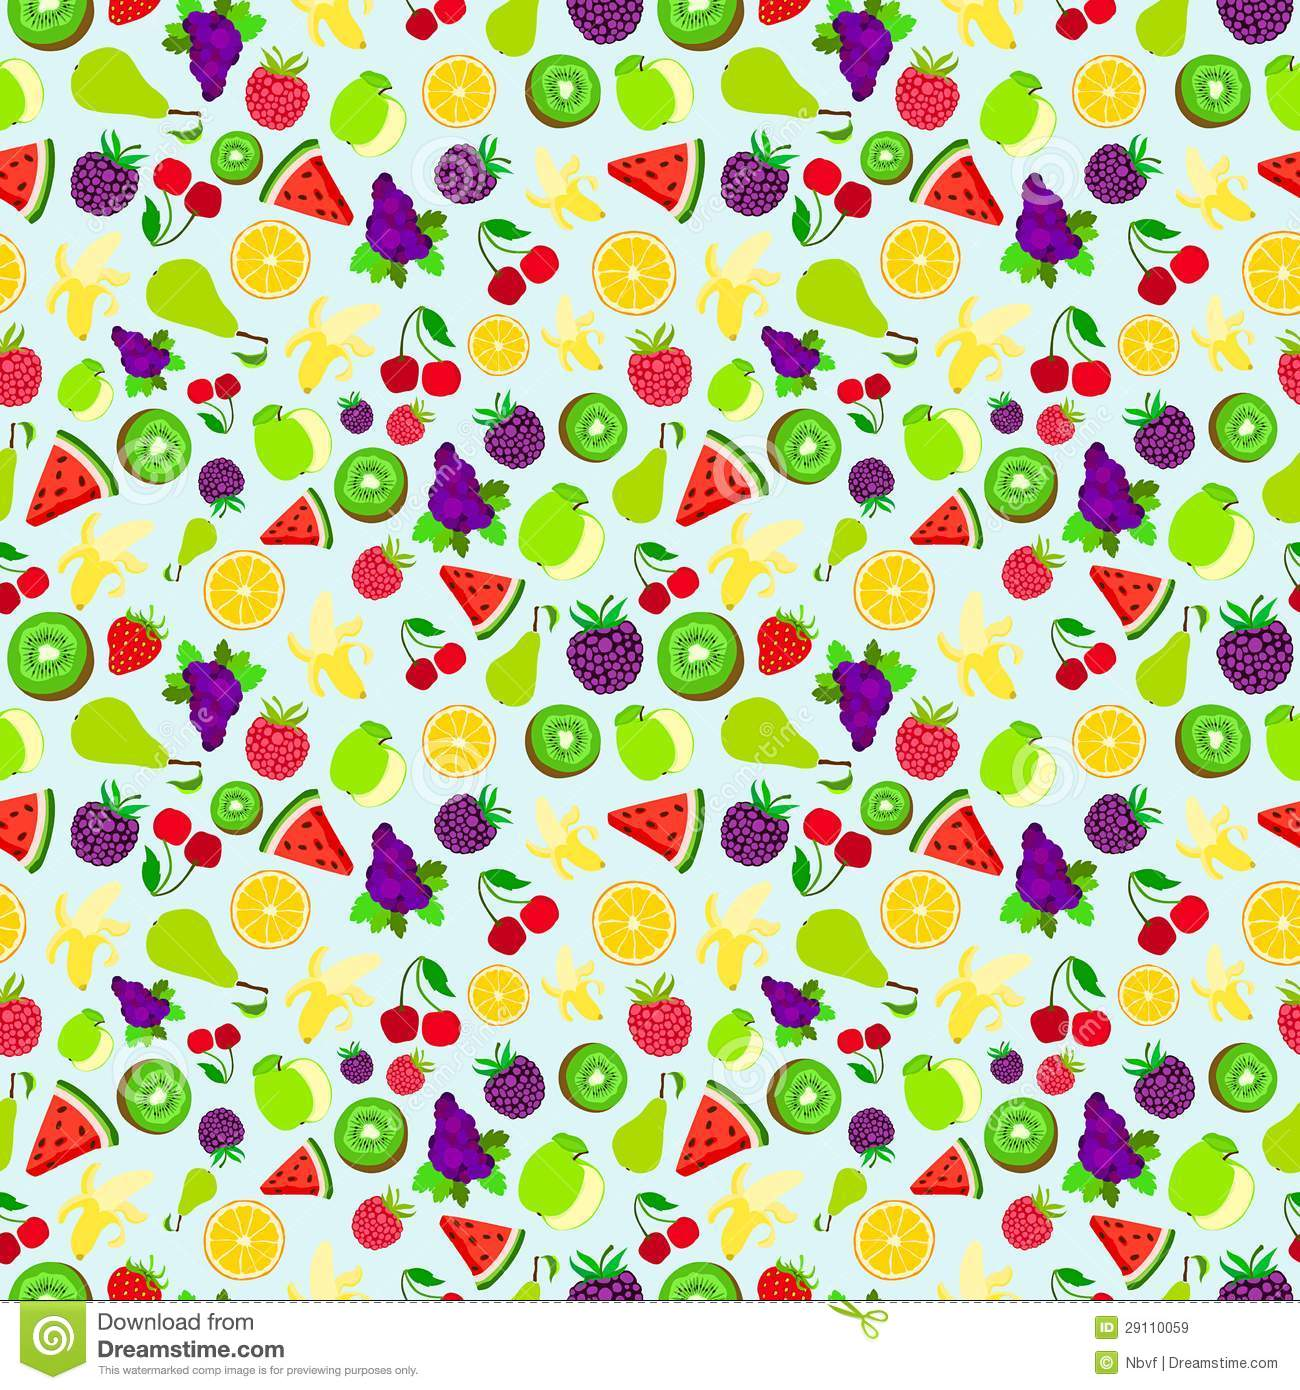 EurepGAP  Fruit and Vegetables  Background